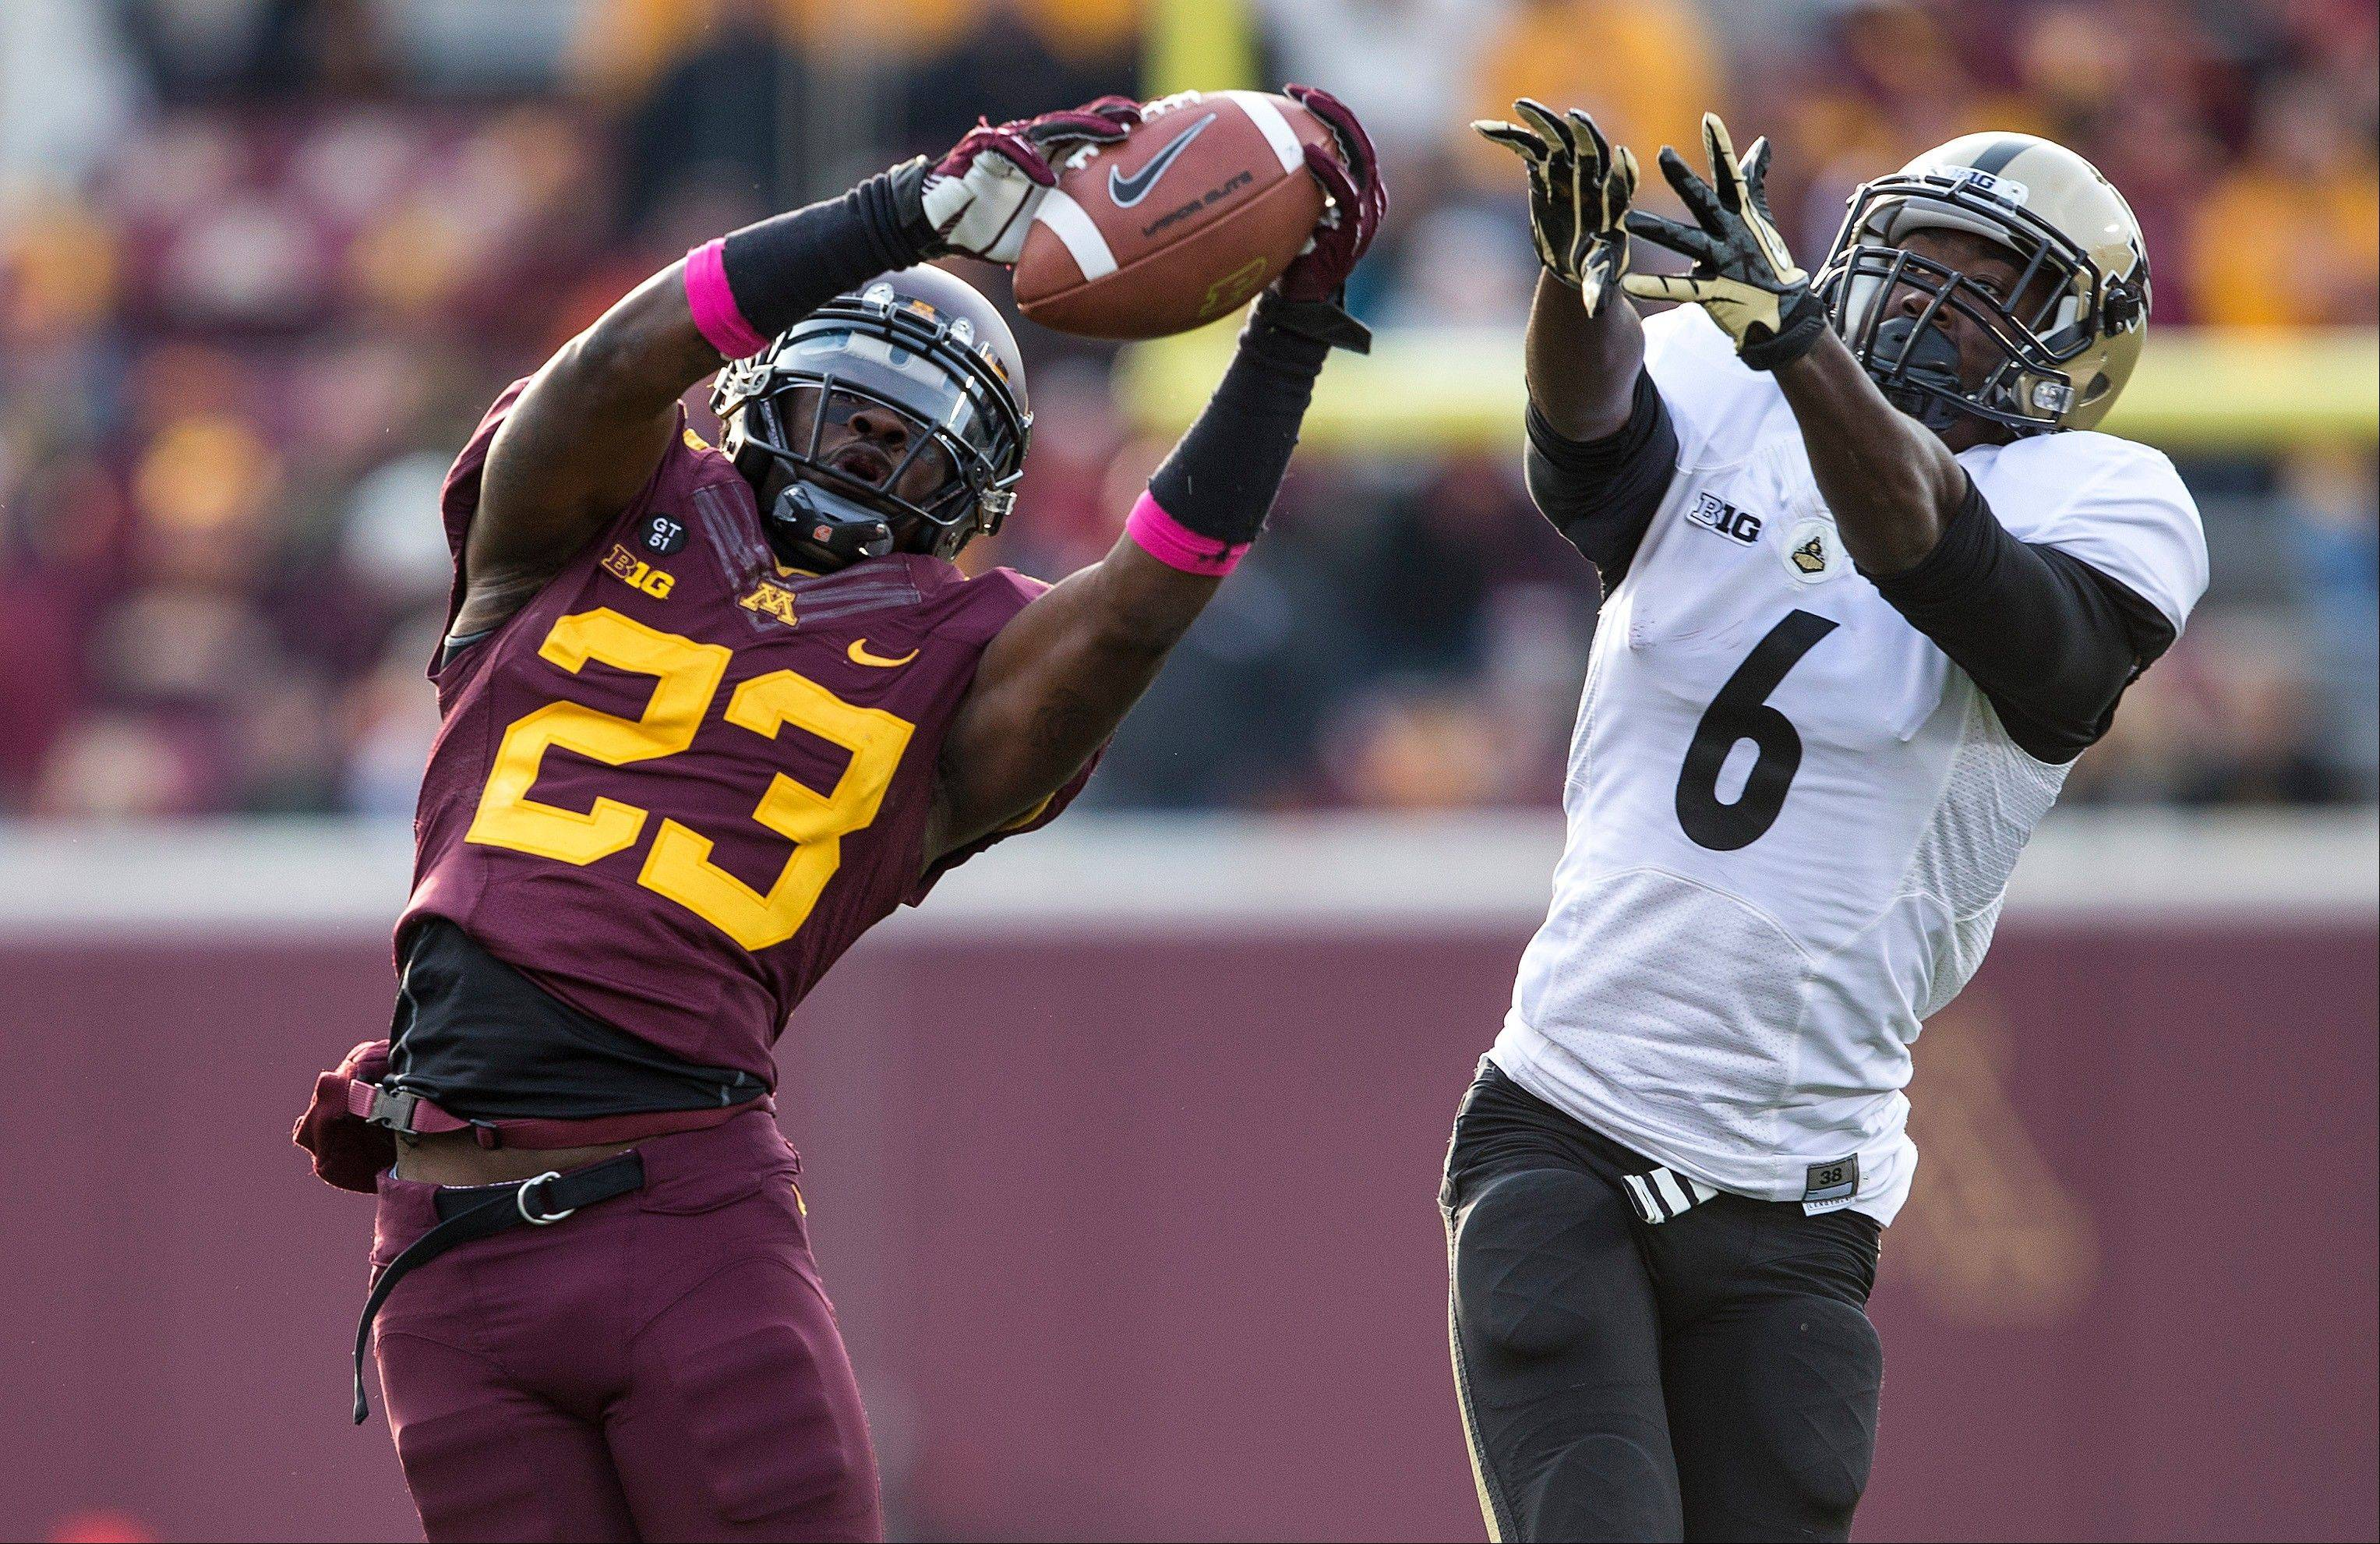 Minnesota defensive back Michael Carter intercepts a pass intended for Purdue wide receiver Gary Bush in the second half of Saturday's game in Minneapolis. Purdue has lost four straight Big Ten games, including Saturday's 44-28 setback at Minnesota.